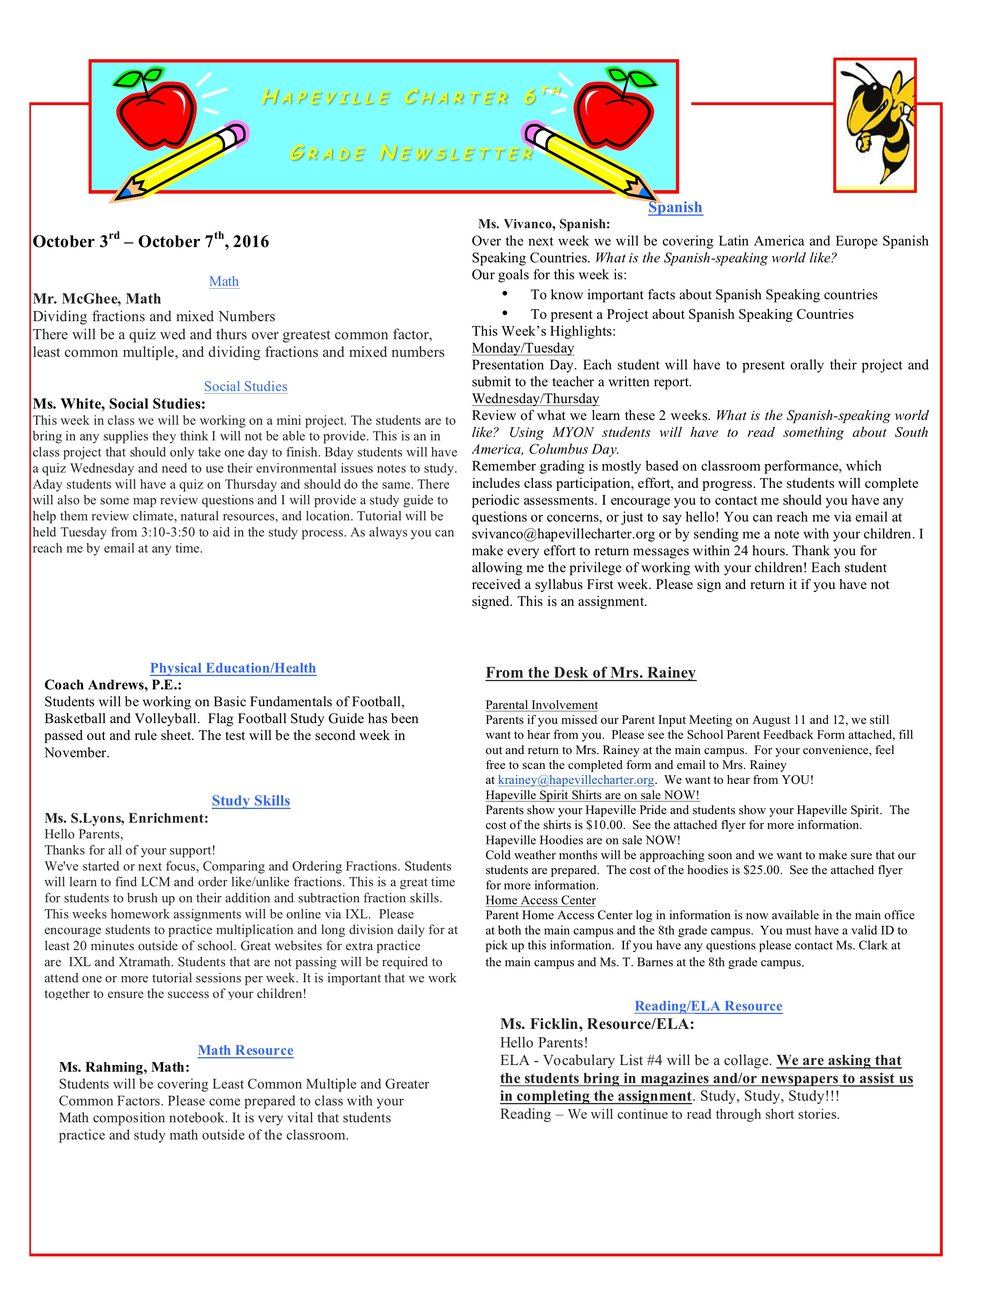 Newsletter Image6th Grade Newsletter 10.3.2016.jpeg